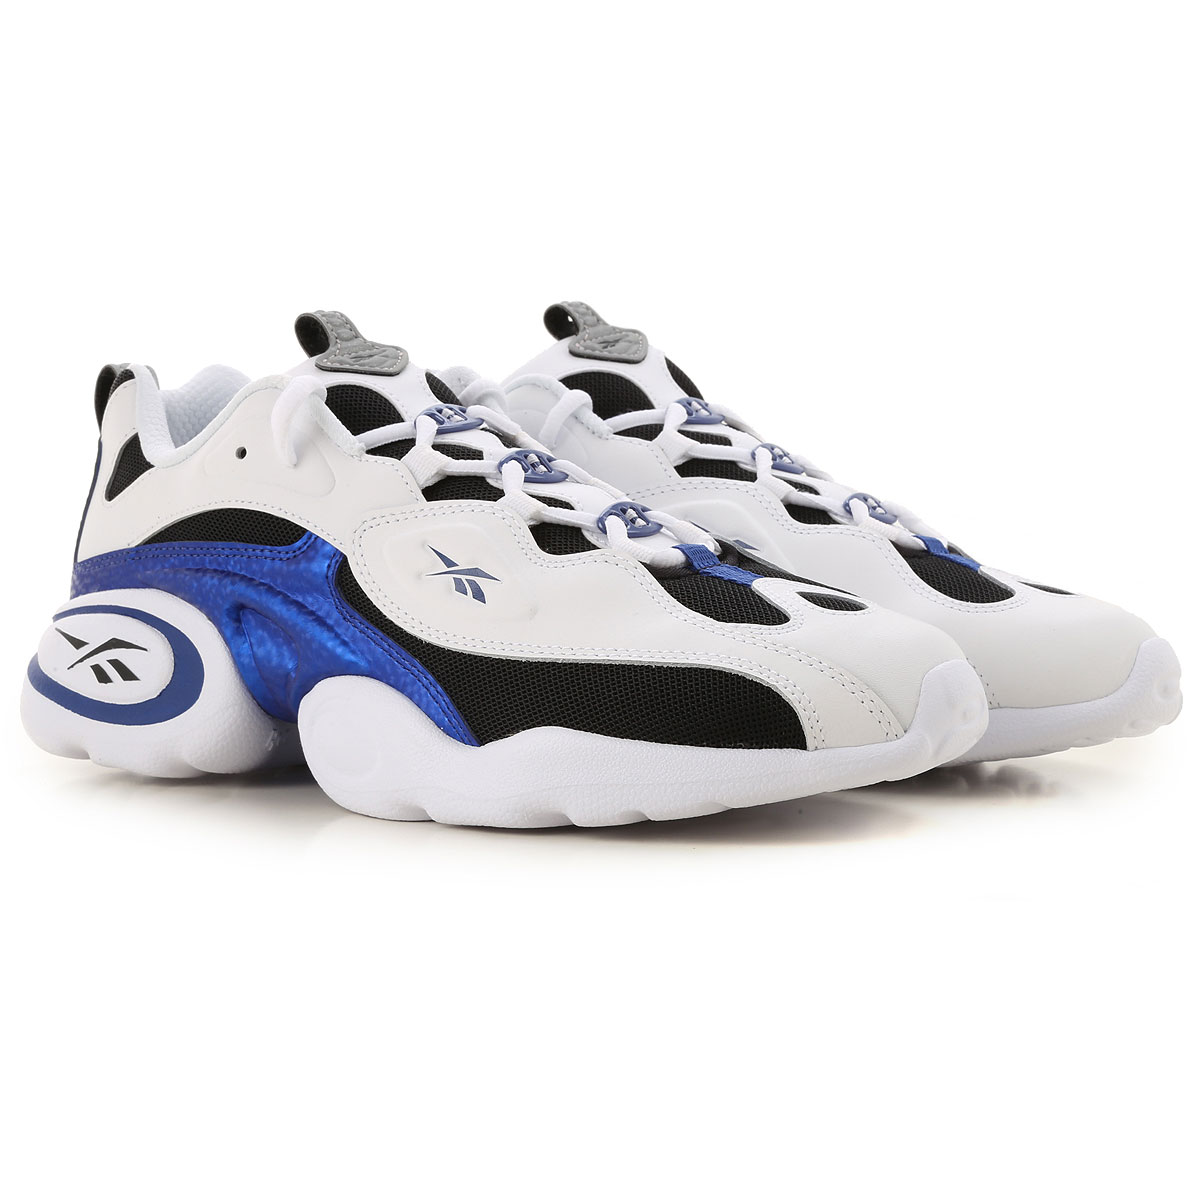 Reebok Sneakers for Men On Sale, White, Leather, 2019, US 7 5 - UK 6 5 - EU 40 - JP 25.5 US 9 5 - UK 8 5 - EU 42 5 - JP 27 5 US 10 5 - UK 9 5 - EU 44